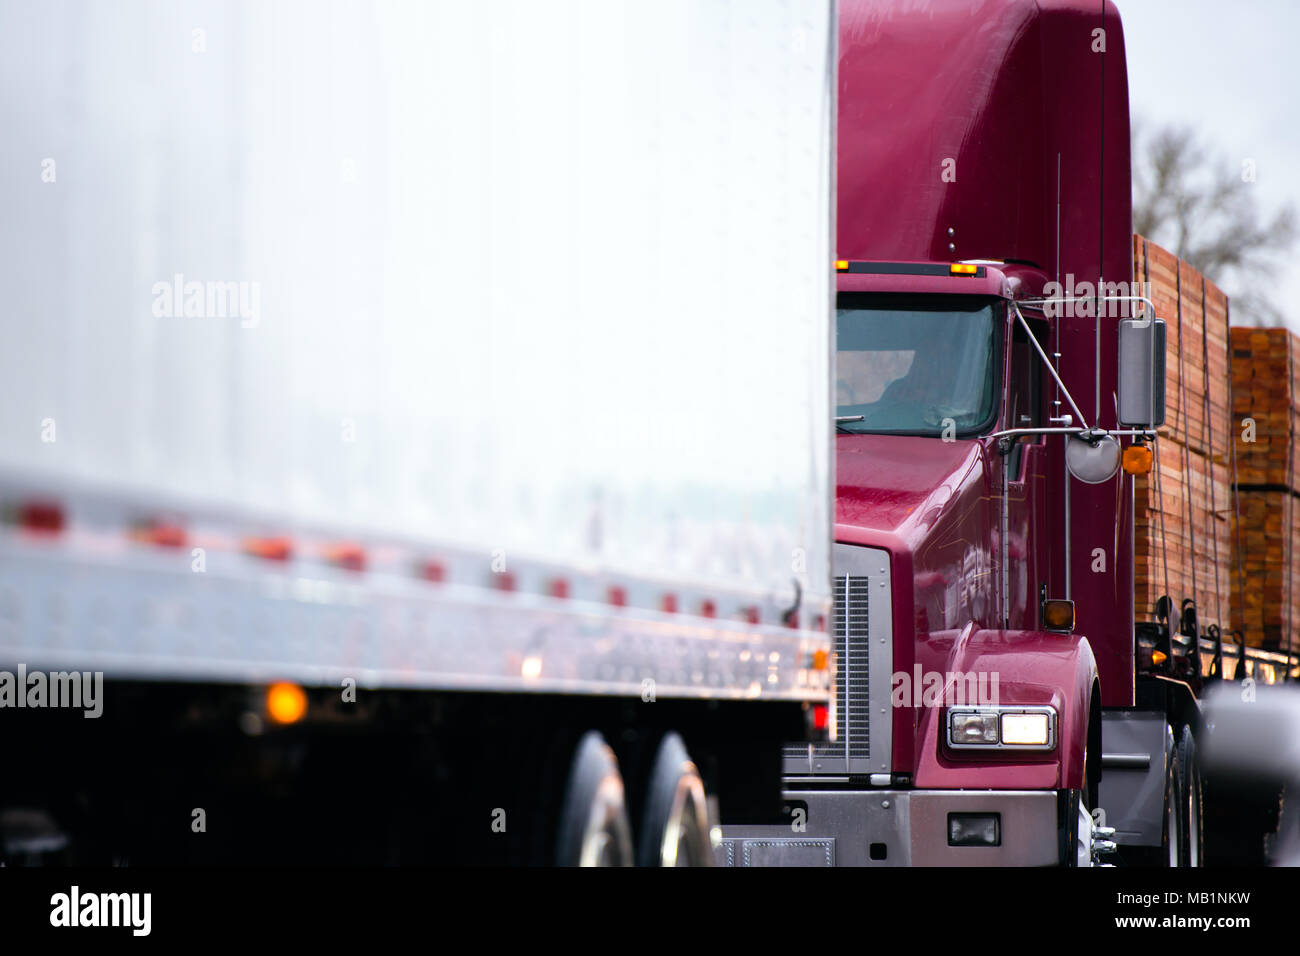 Tractor Trailer Truck Stock Photos Amp Tractor Trailer Truck Stock Images Alamy